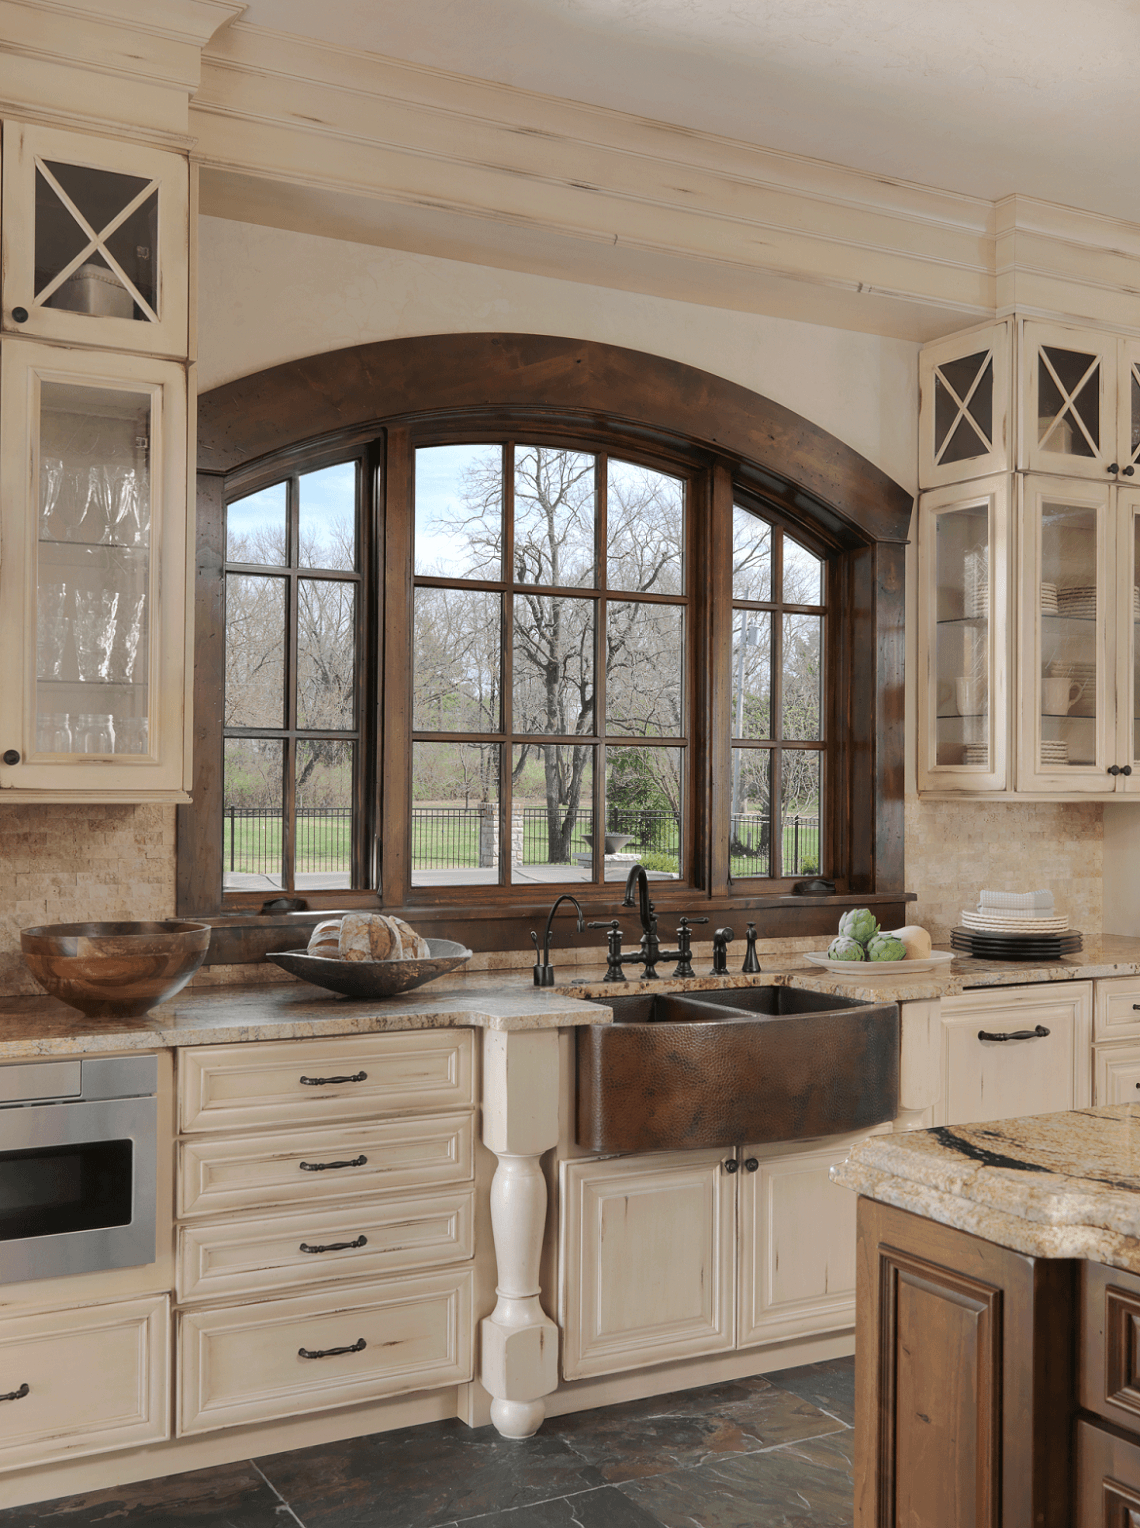 Old World Kitchen With Hammered Copper Sink Love The Window Over The